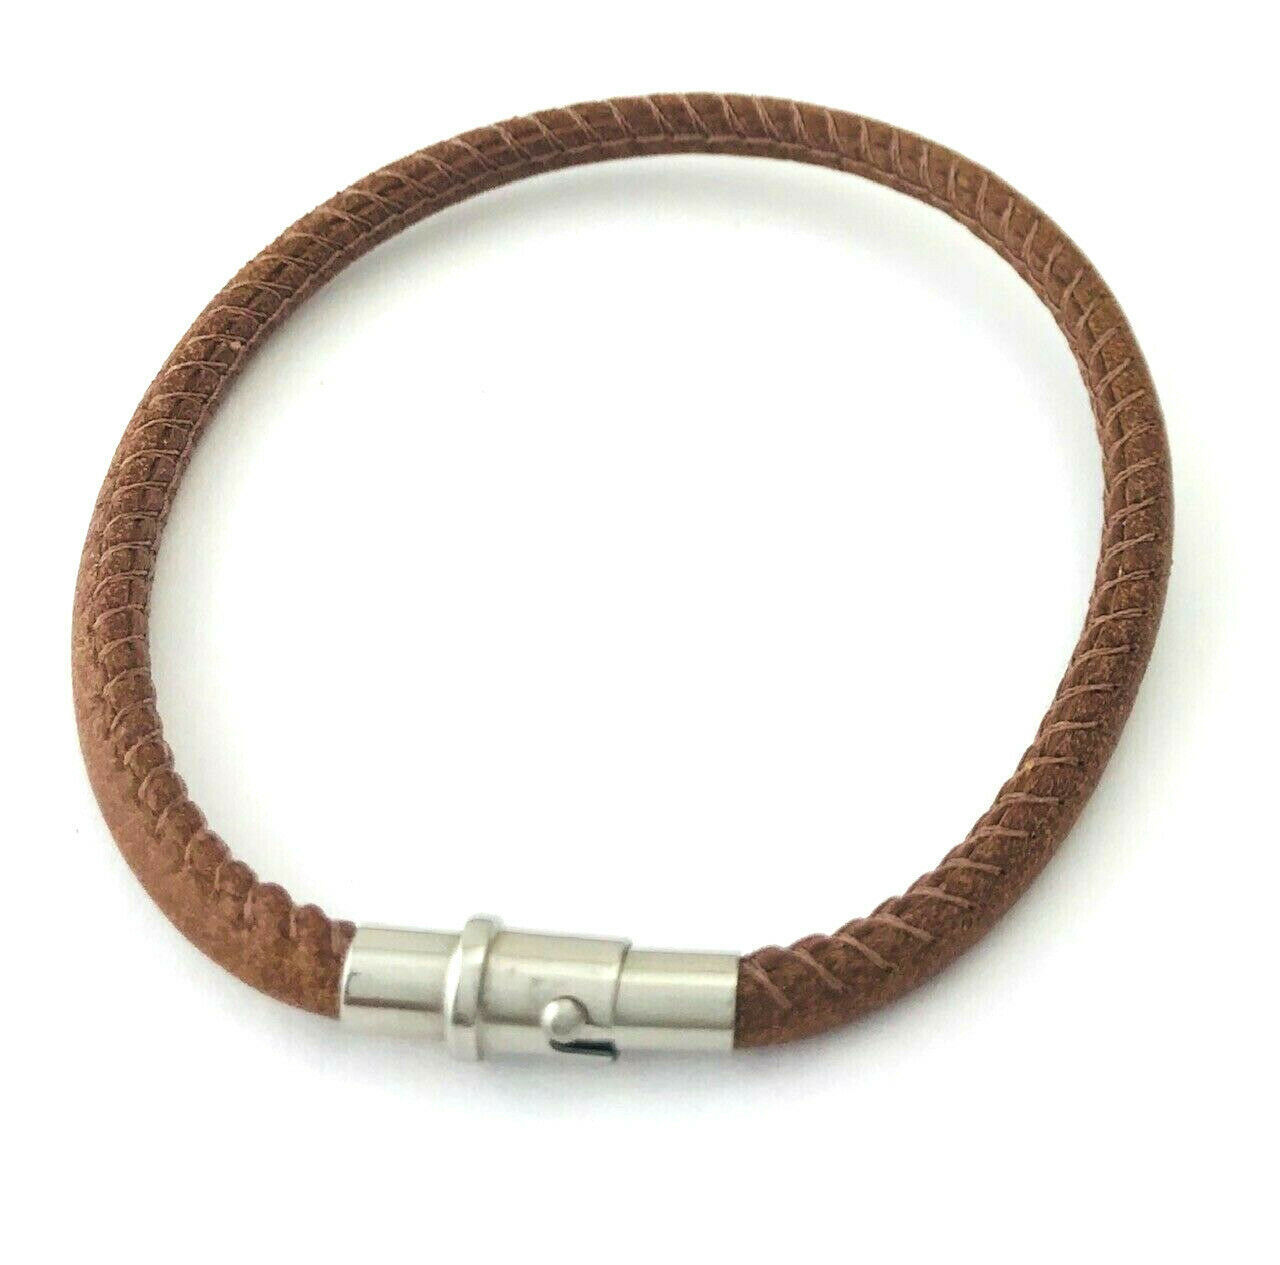 Primary image for Brighton Coachella Brown Leather Bracelet, Size S, New